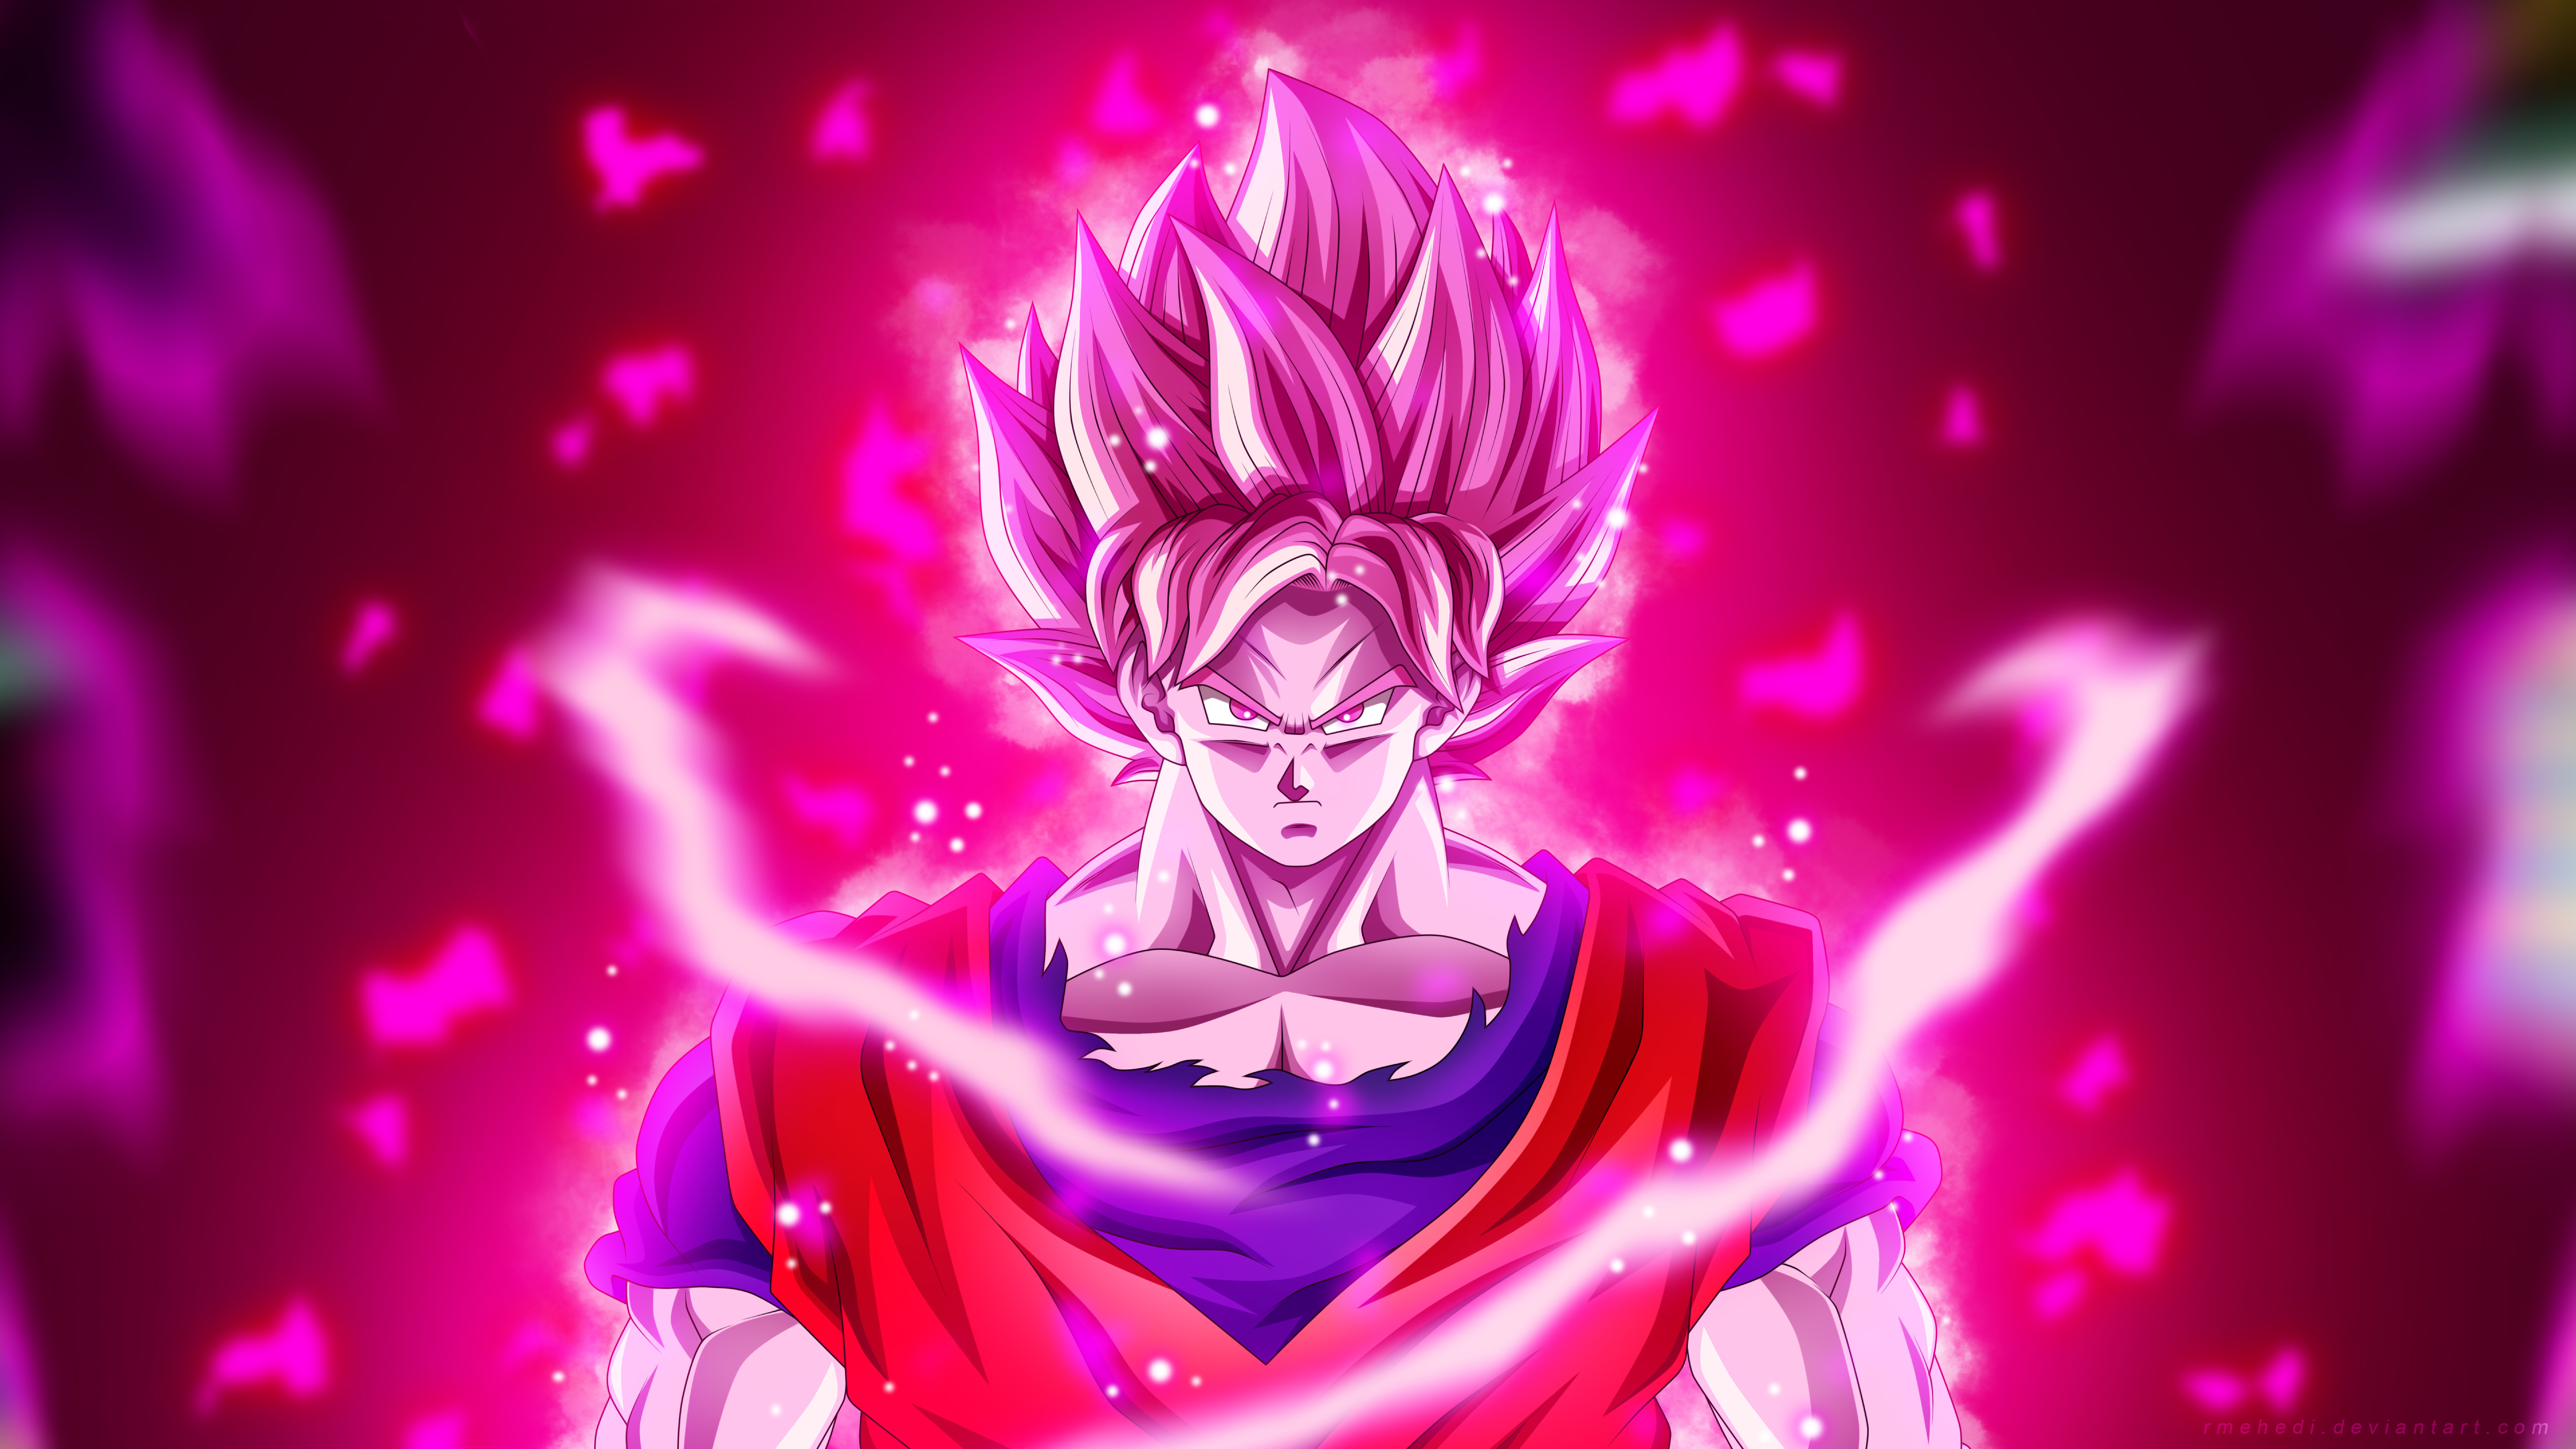 7680x4320 Goku Dragon Ball Super 8k Wallpaper Hd Anime 4k Wallpapers Images Photos And Background